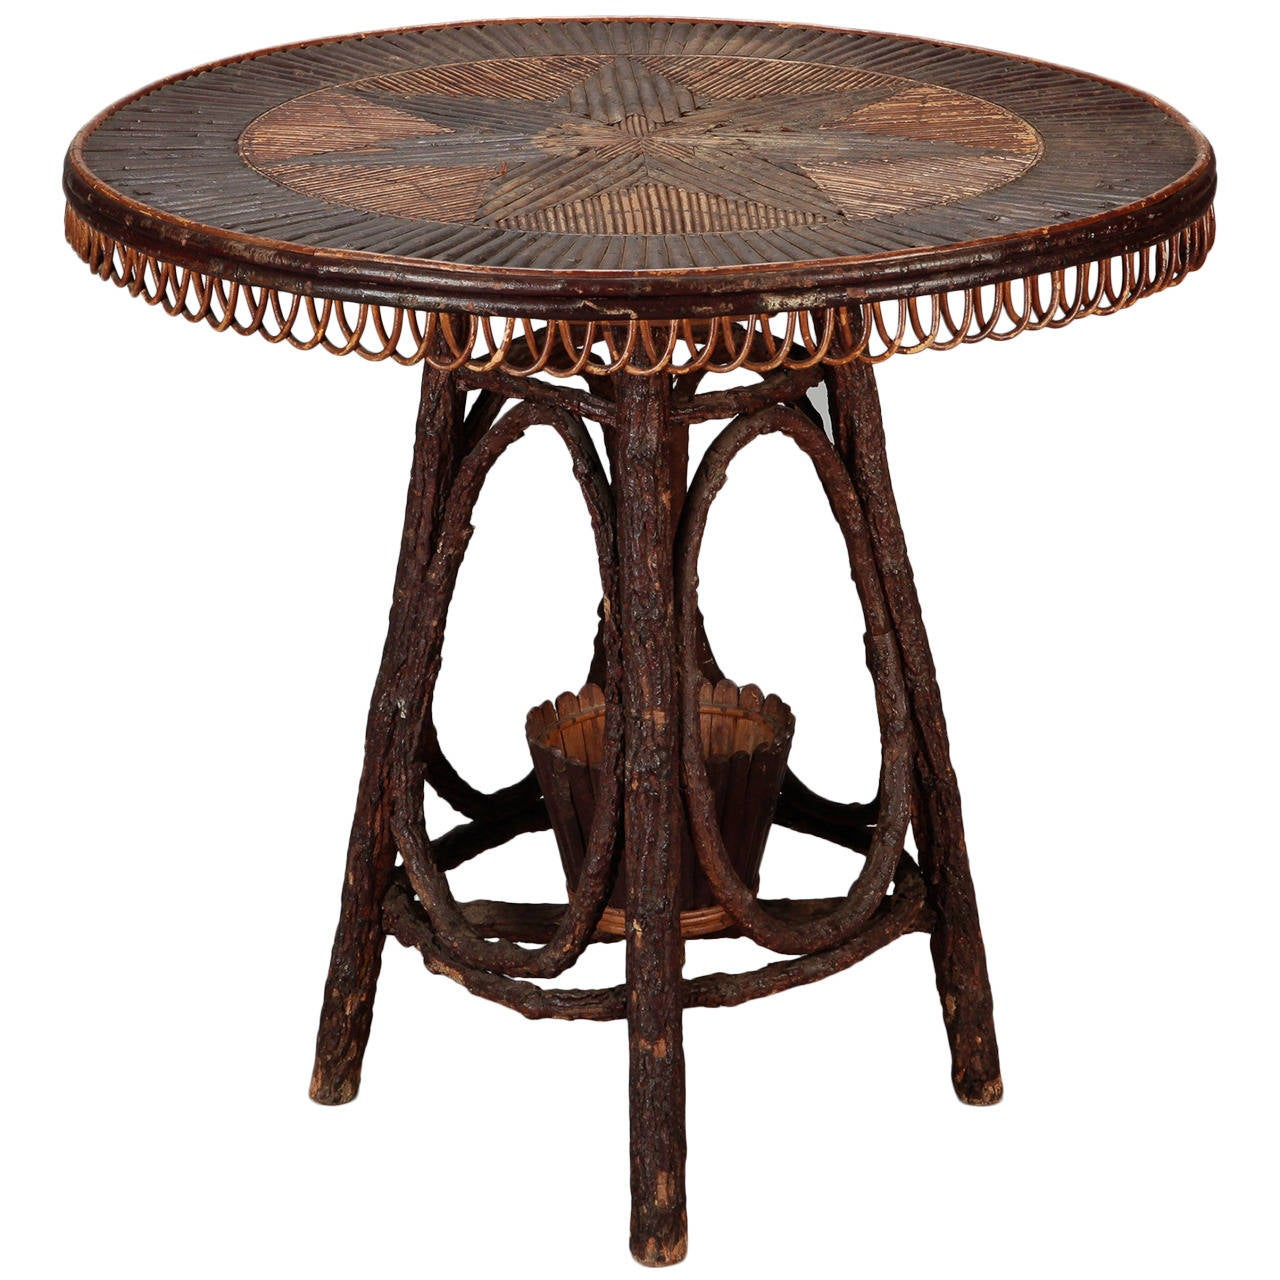 French Round Bent Willow Twig Table With Star Design Inlay For